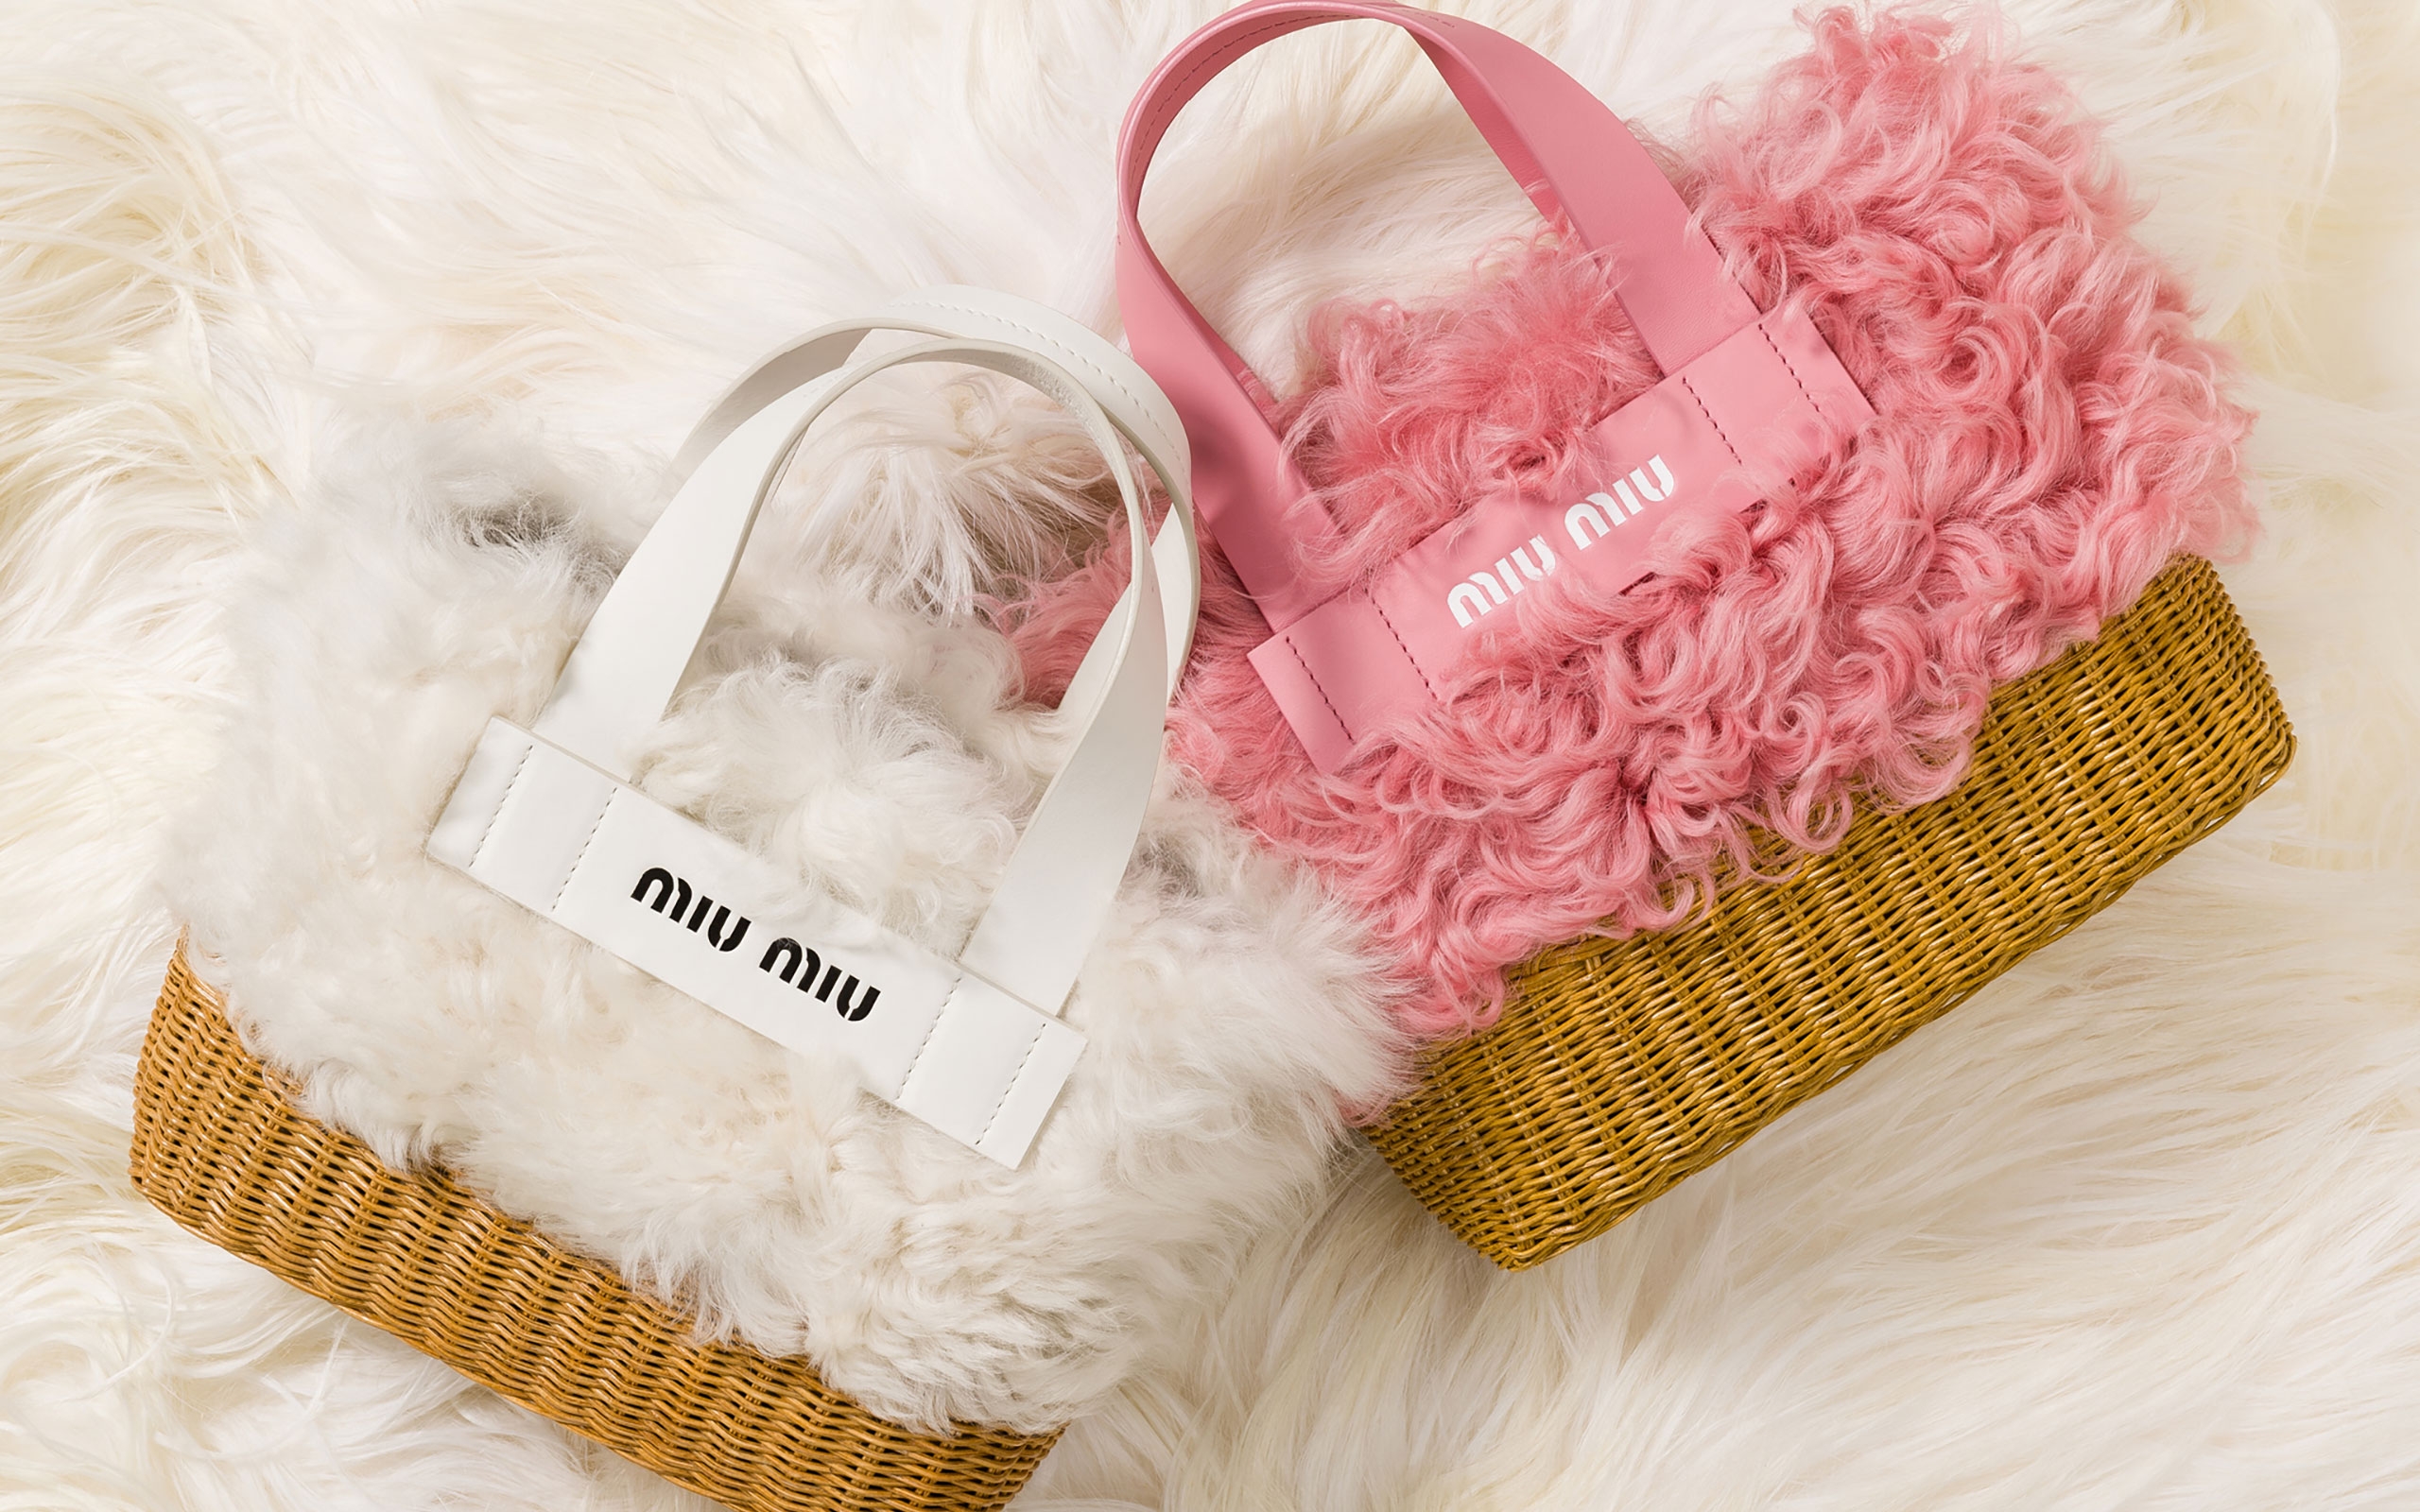 MIU MIU Opens Its Pop-Up Store In Osaka